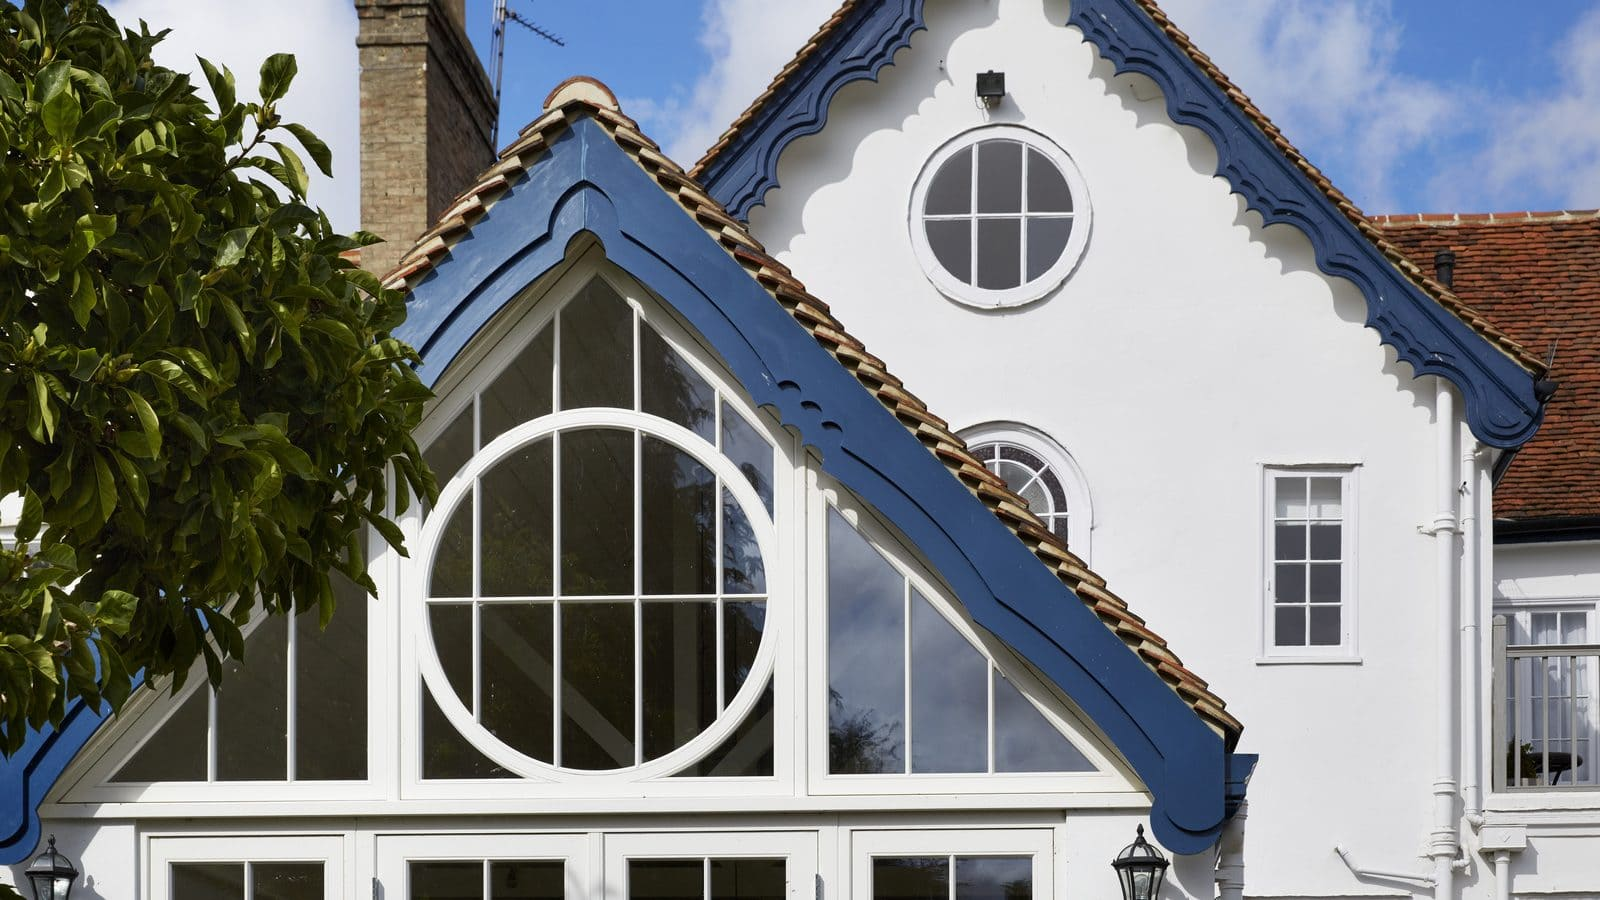 The difference between gables and hip rafters in glazed architecture